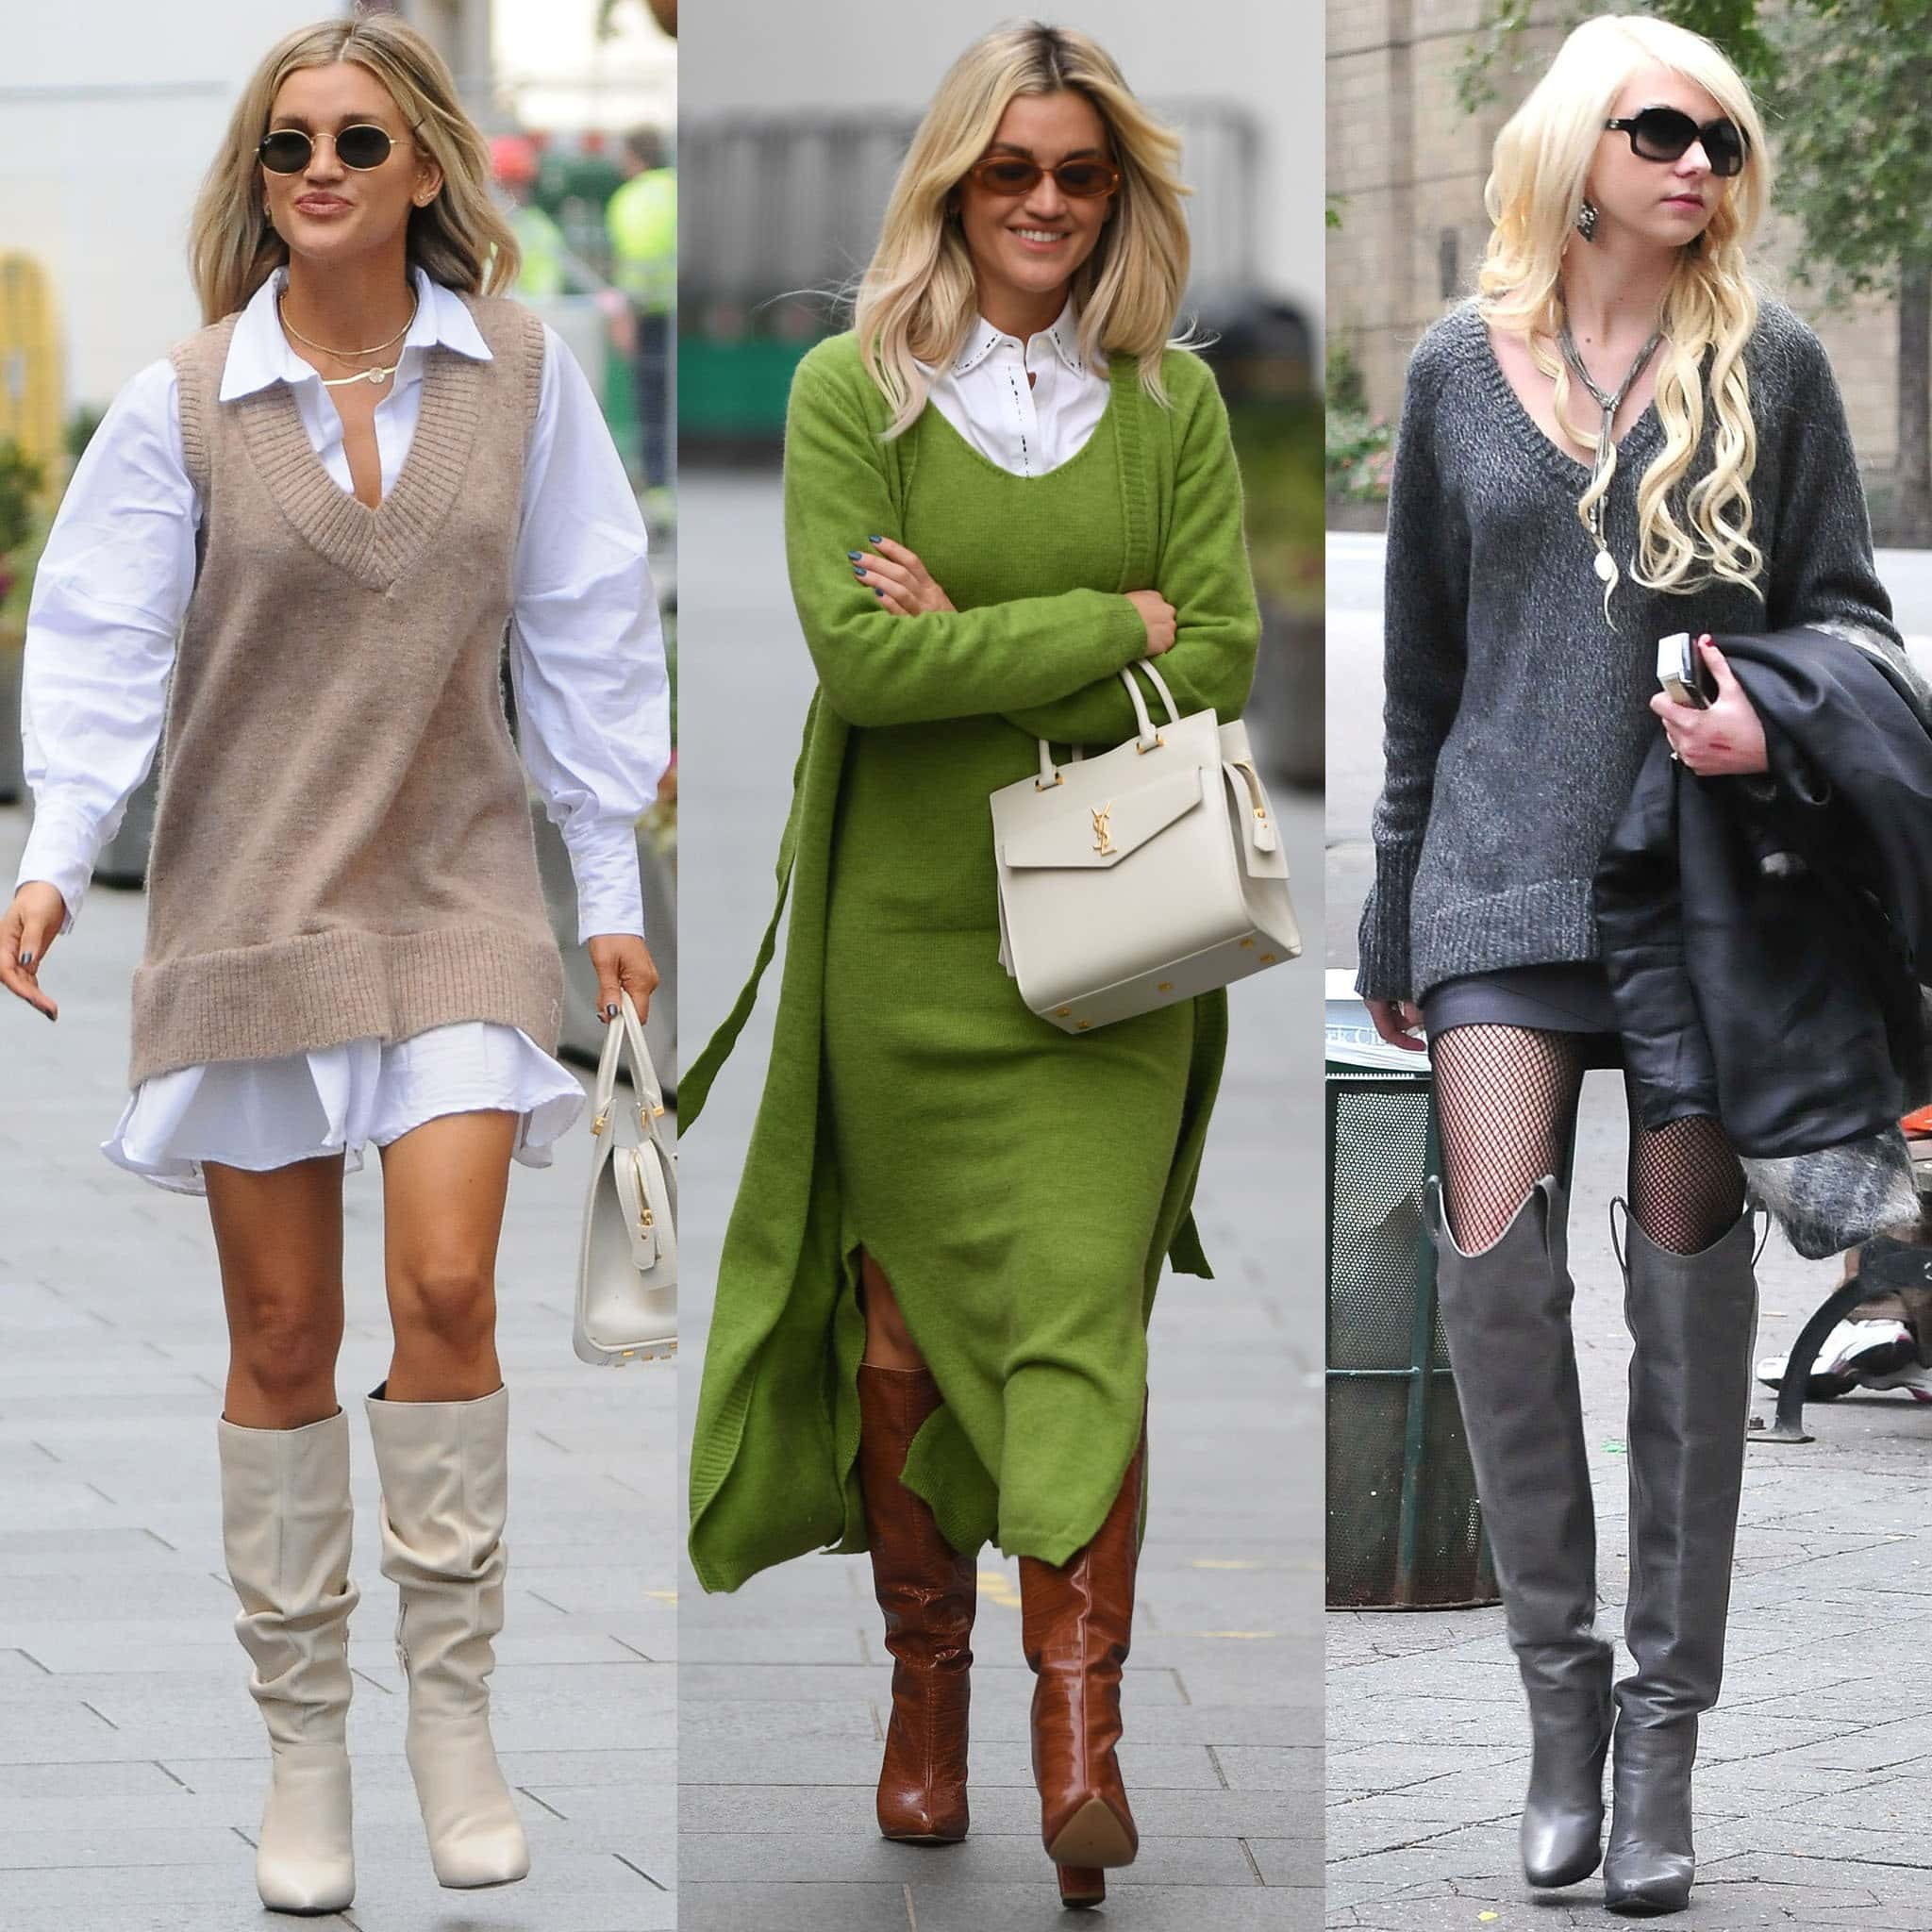 Sweater dresses look great with riding boots as shown by Ashley Roberts and Taylor Momsen